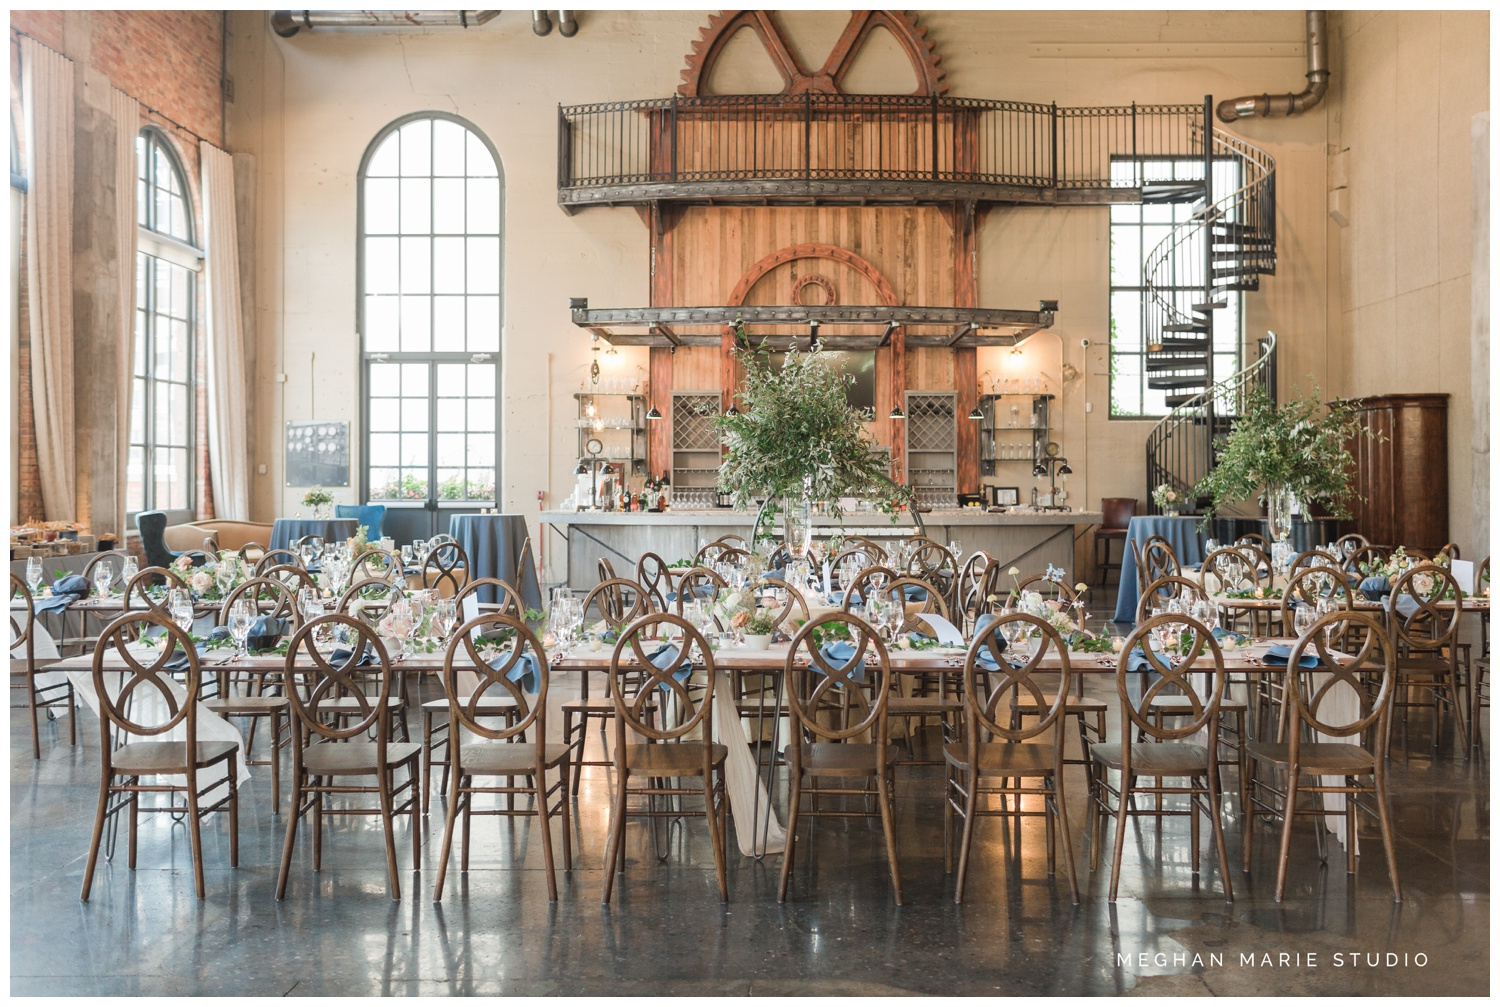 meghan marie studio university of dayton cathedral wedding with romantic earth tone donuts and decor steam plant ohio wedding_0313.jpg